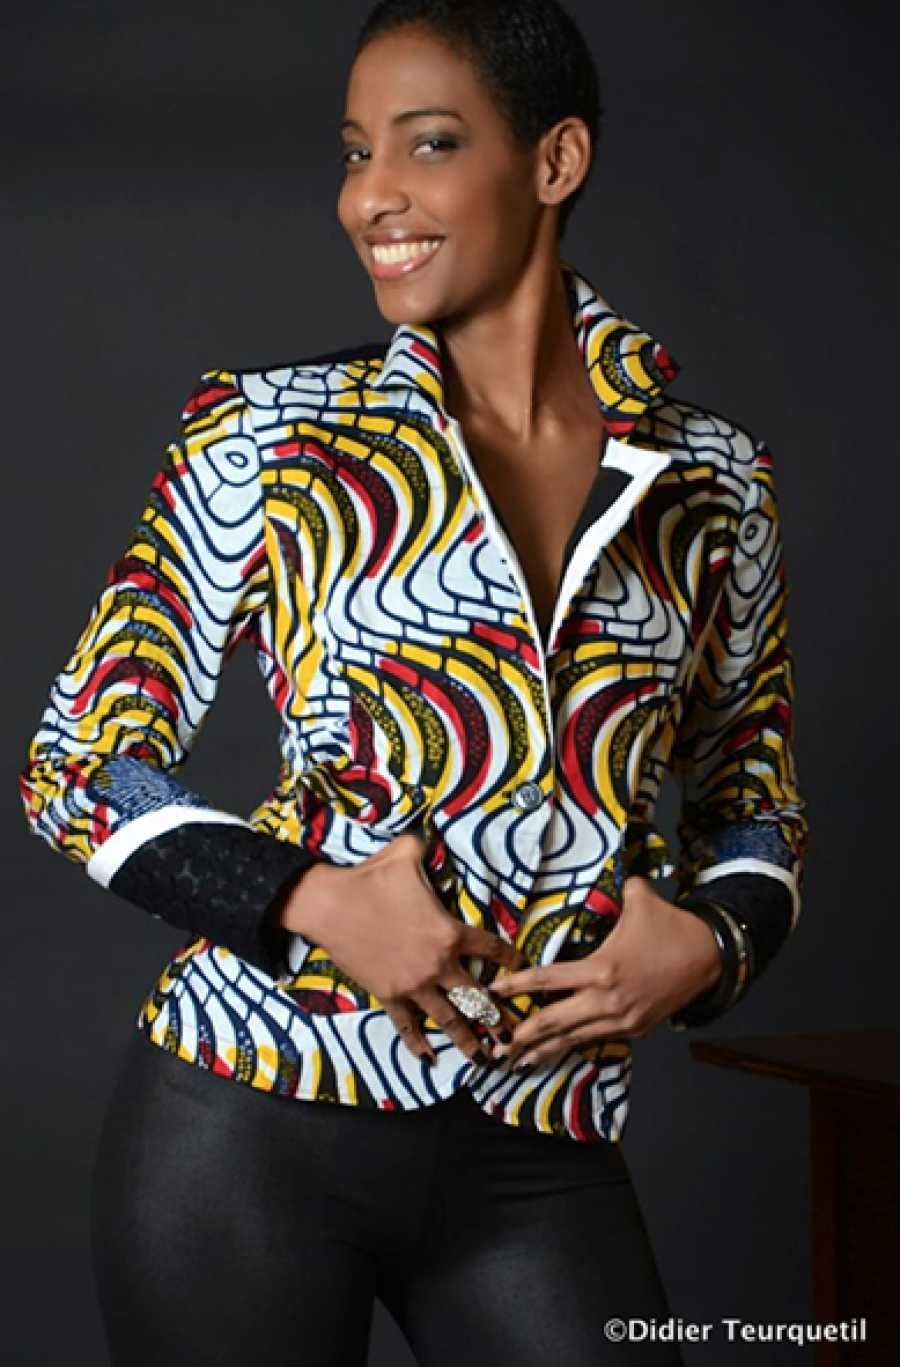 Photos model de pagne africain 2014 page 2 | °°*pagneuse*°° | Pinterest | African fabric ...